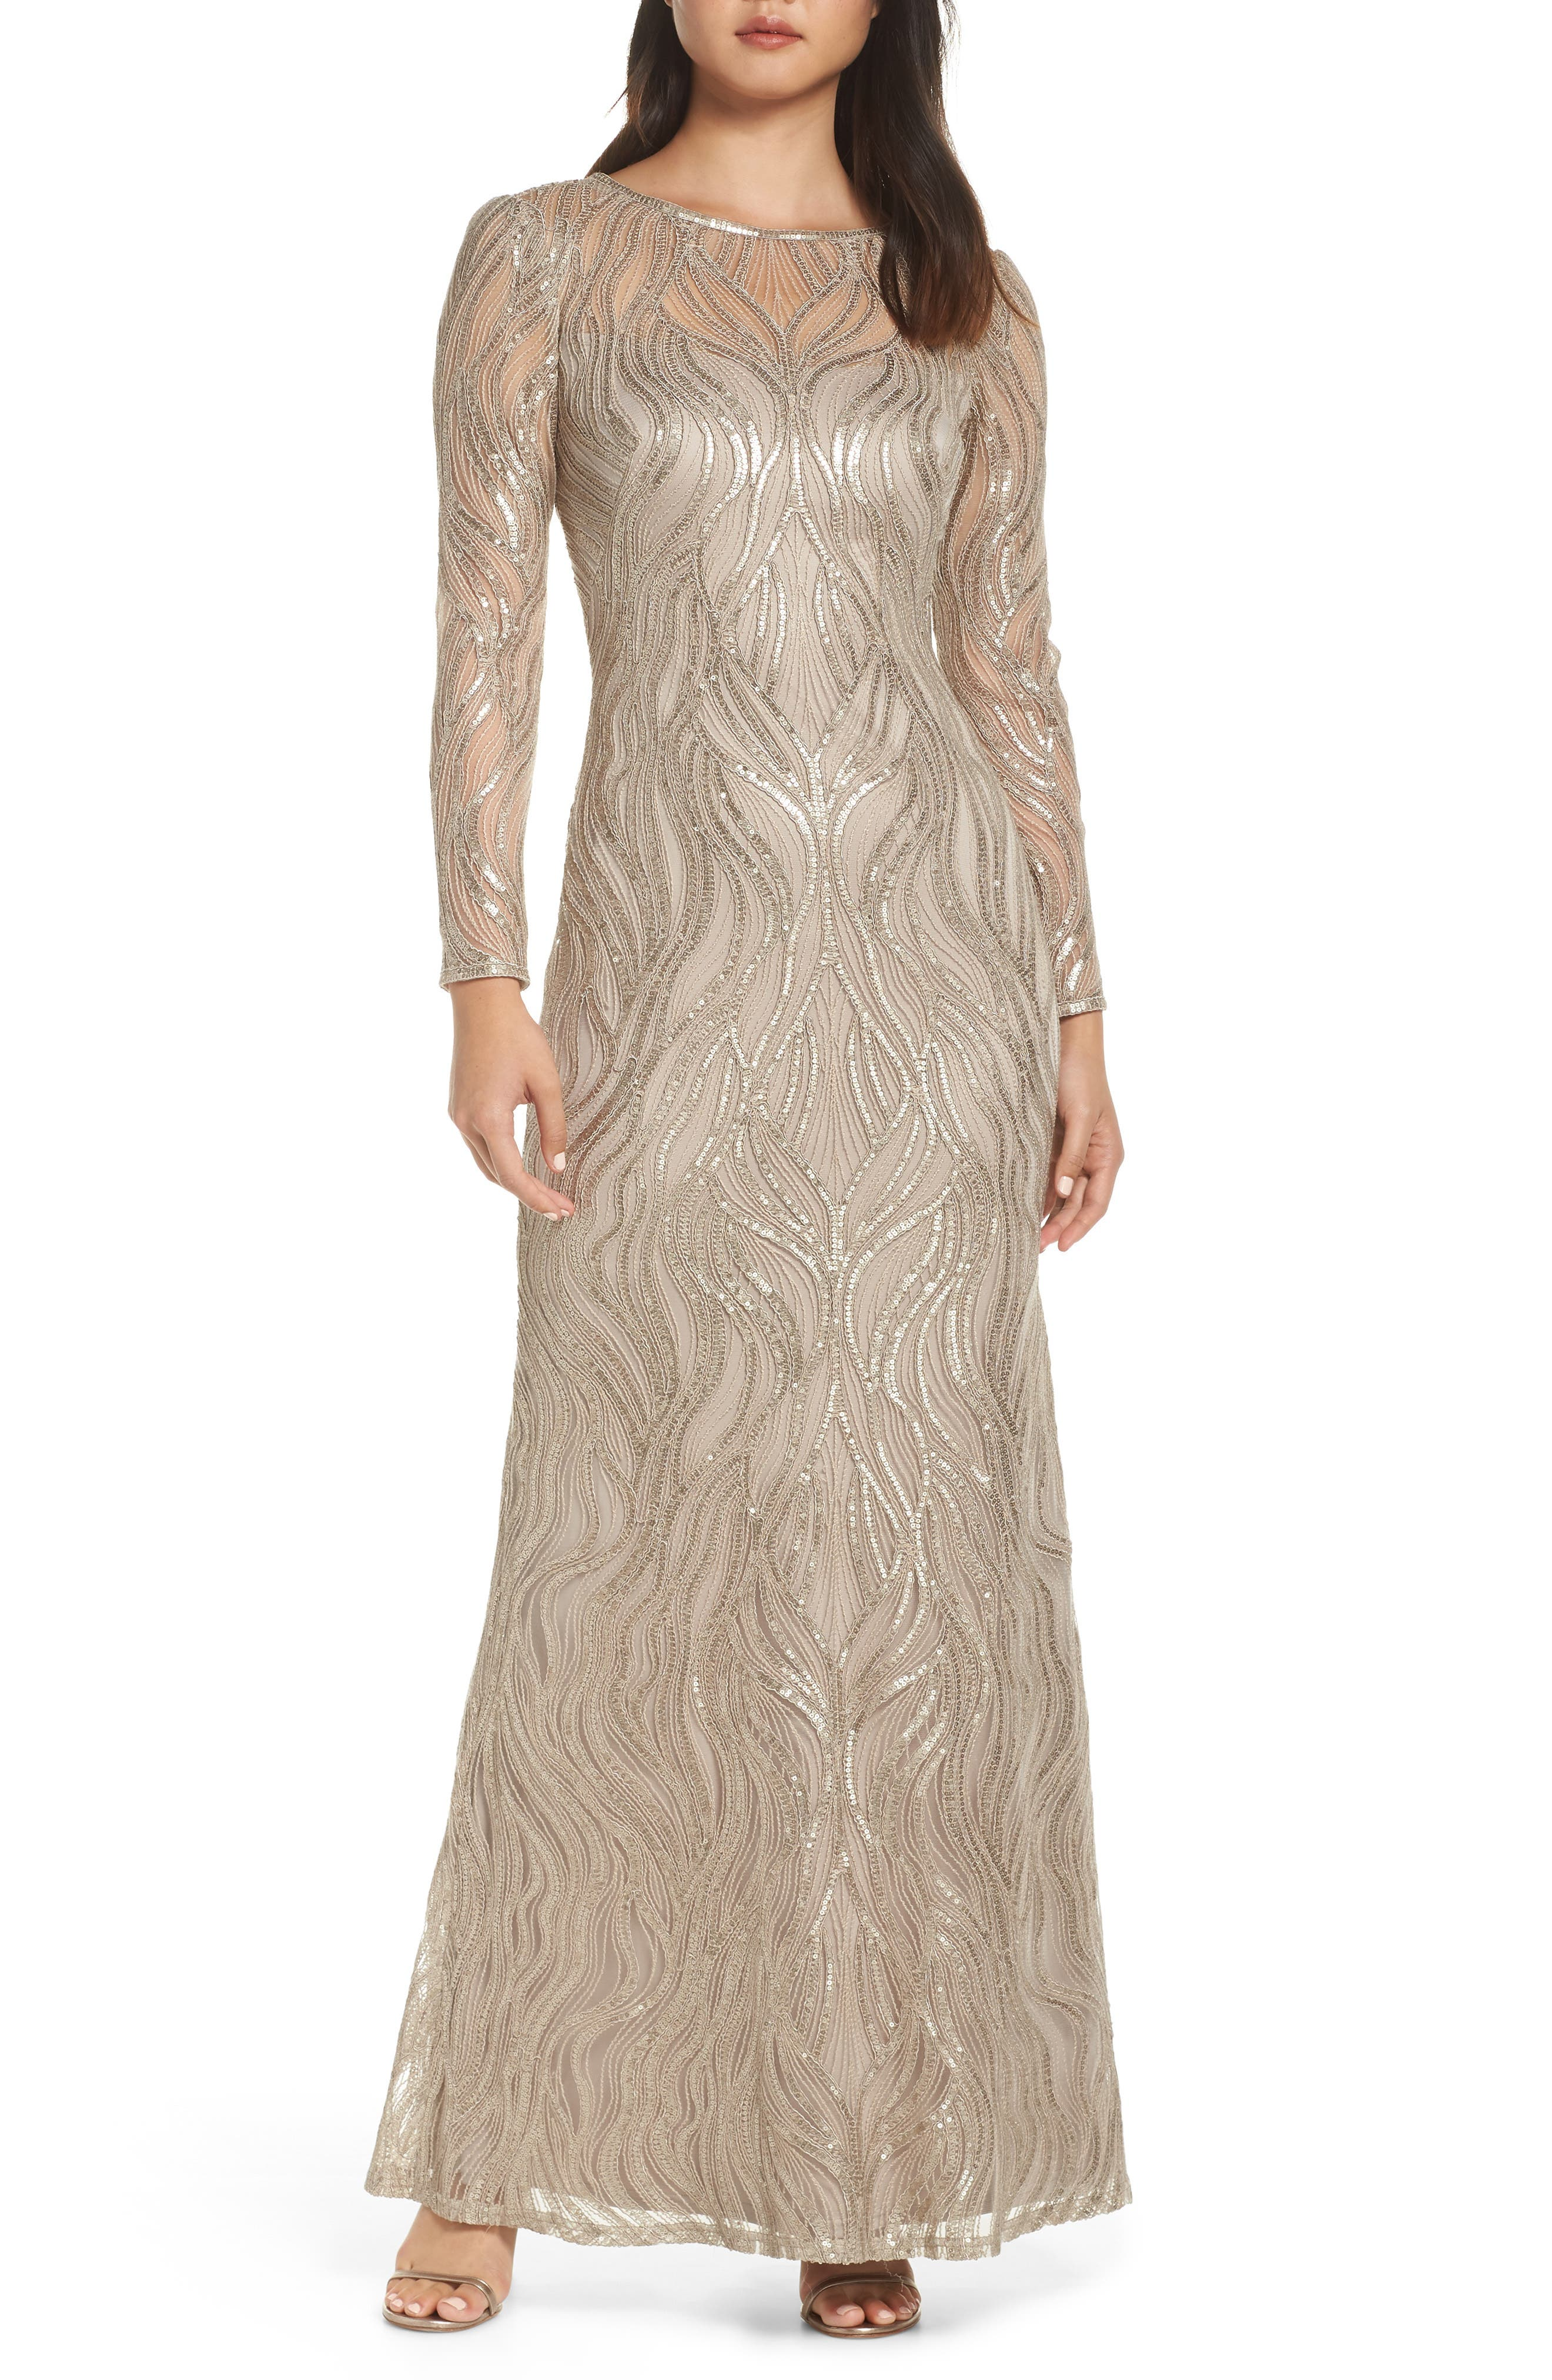 Tadashi Shoji Long Sleeve Sequined Mesh Evening Dress, Beige